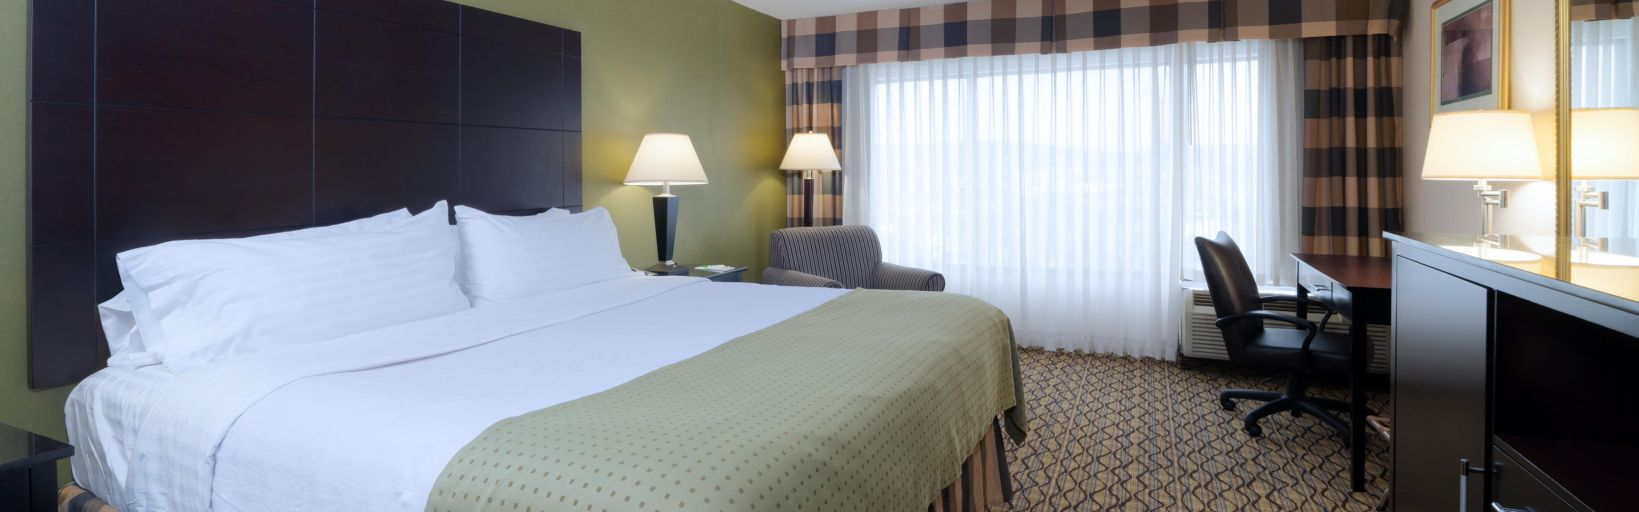 Holiday Inn Totowa Wayne - Room Pictures & Amenities